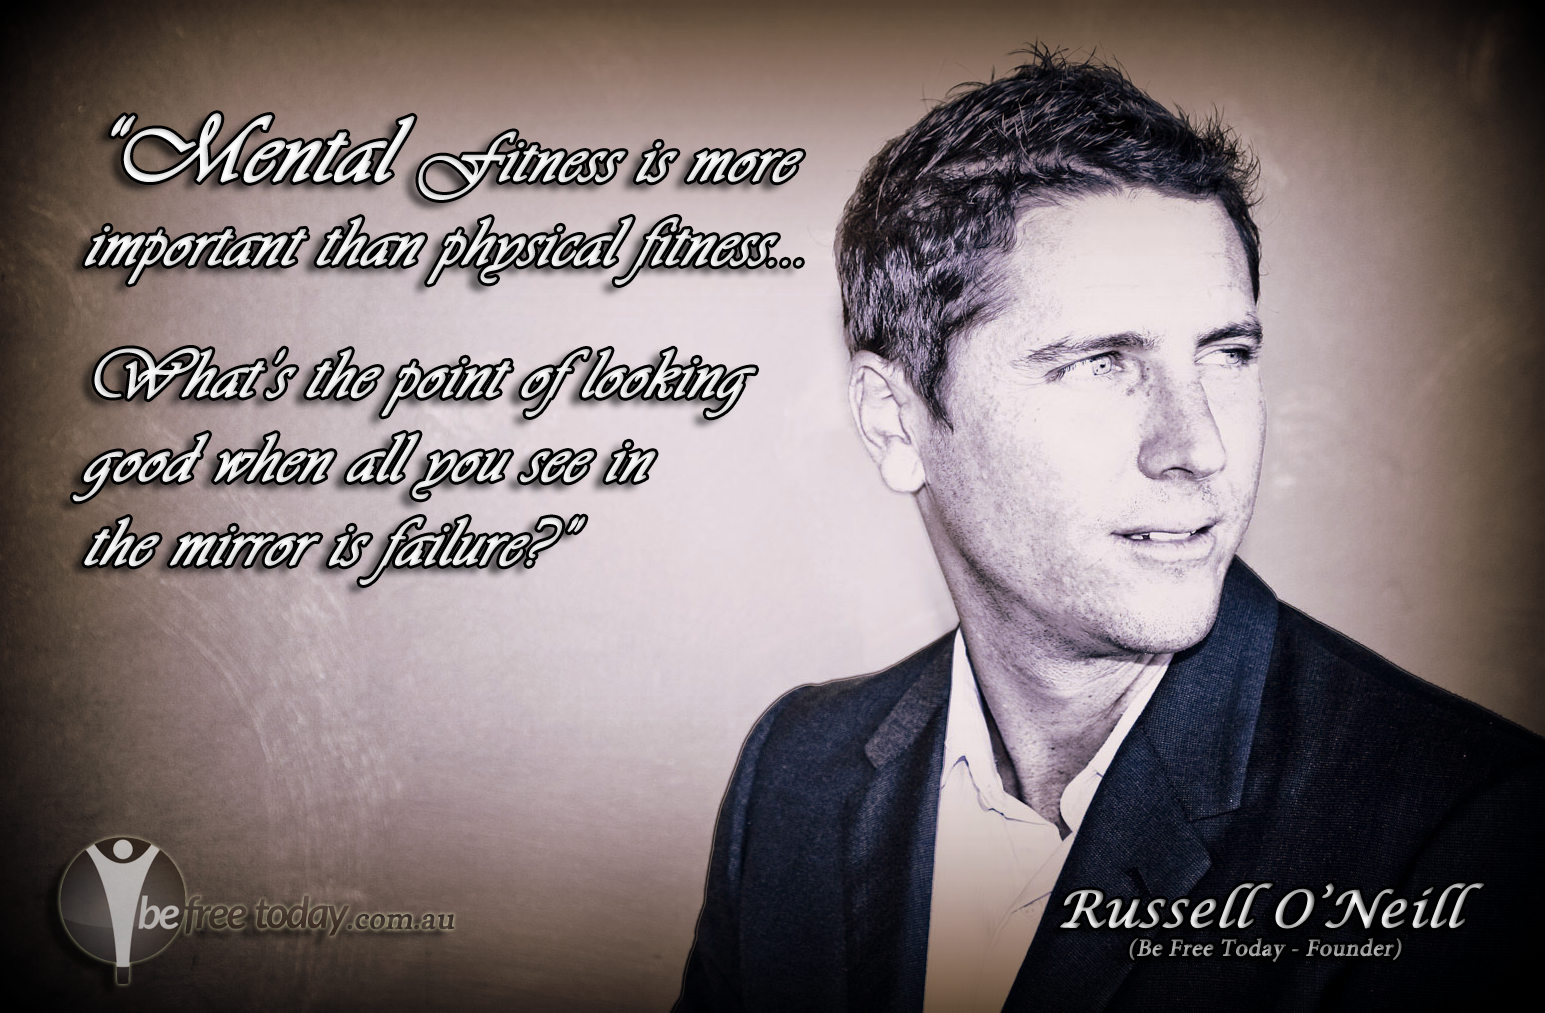 Russell O'Neill - Founder and Performance Coach. Mental Fitness